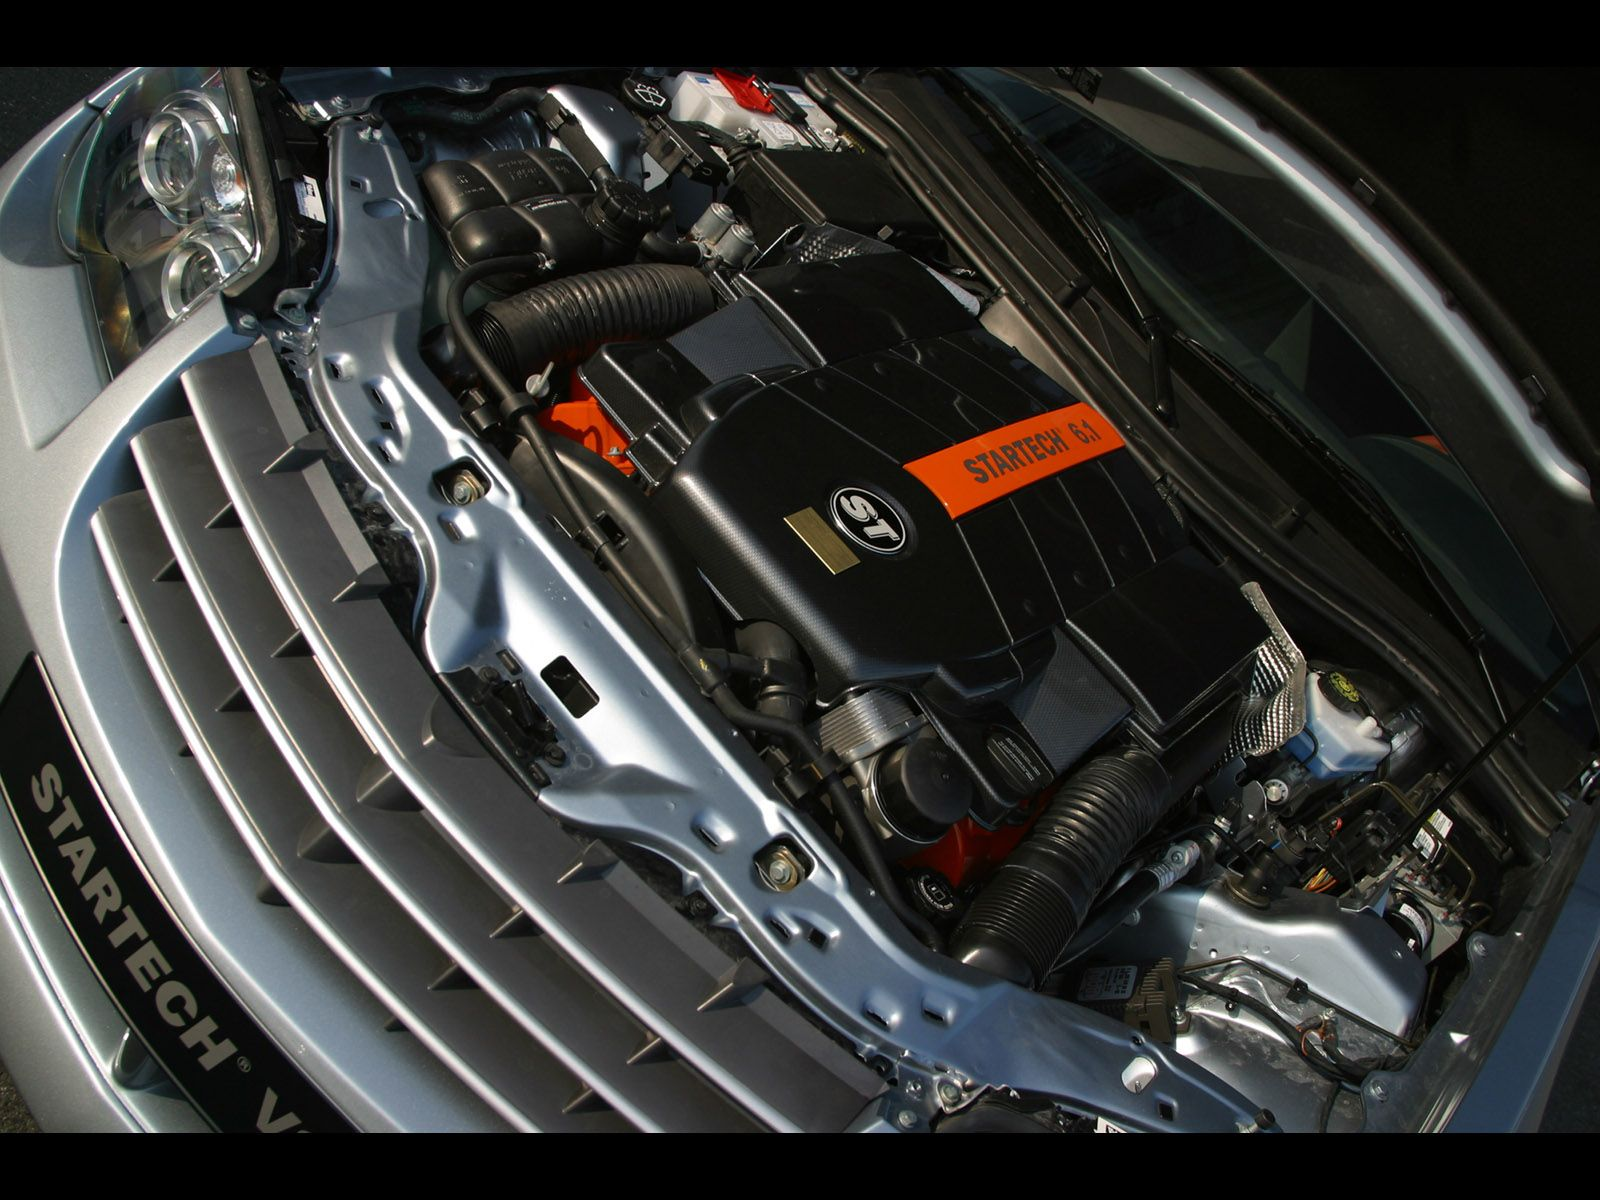 2005 Startech Chrysler Crossfire Coupe Engine Compartment Wiring Harness 1600x1200 Wallpaper